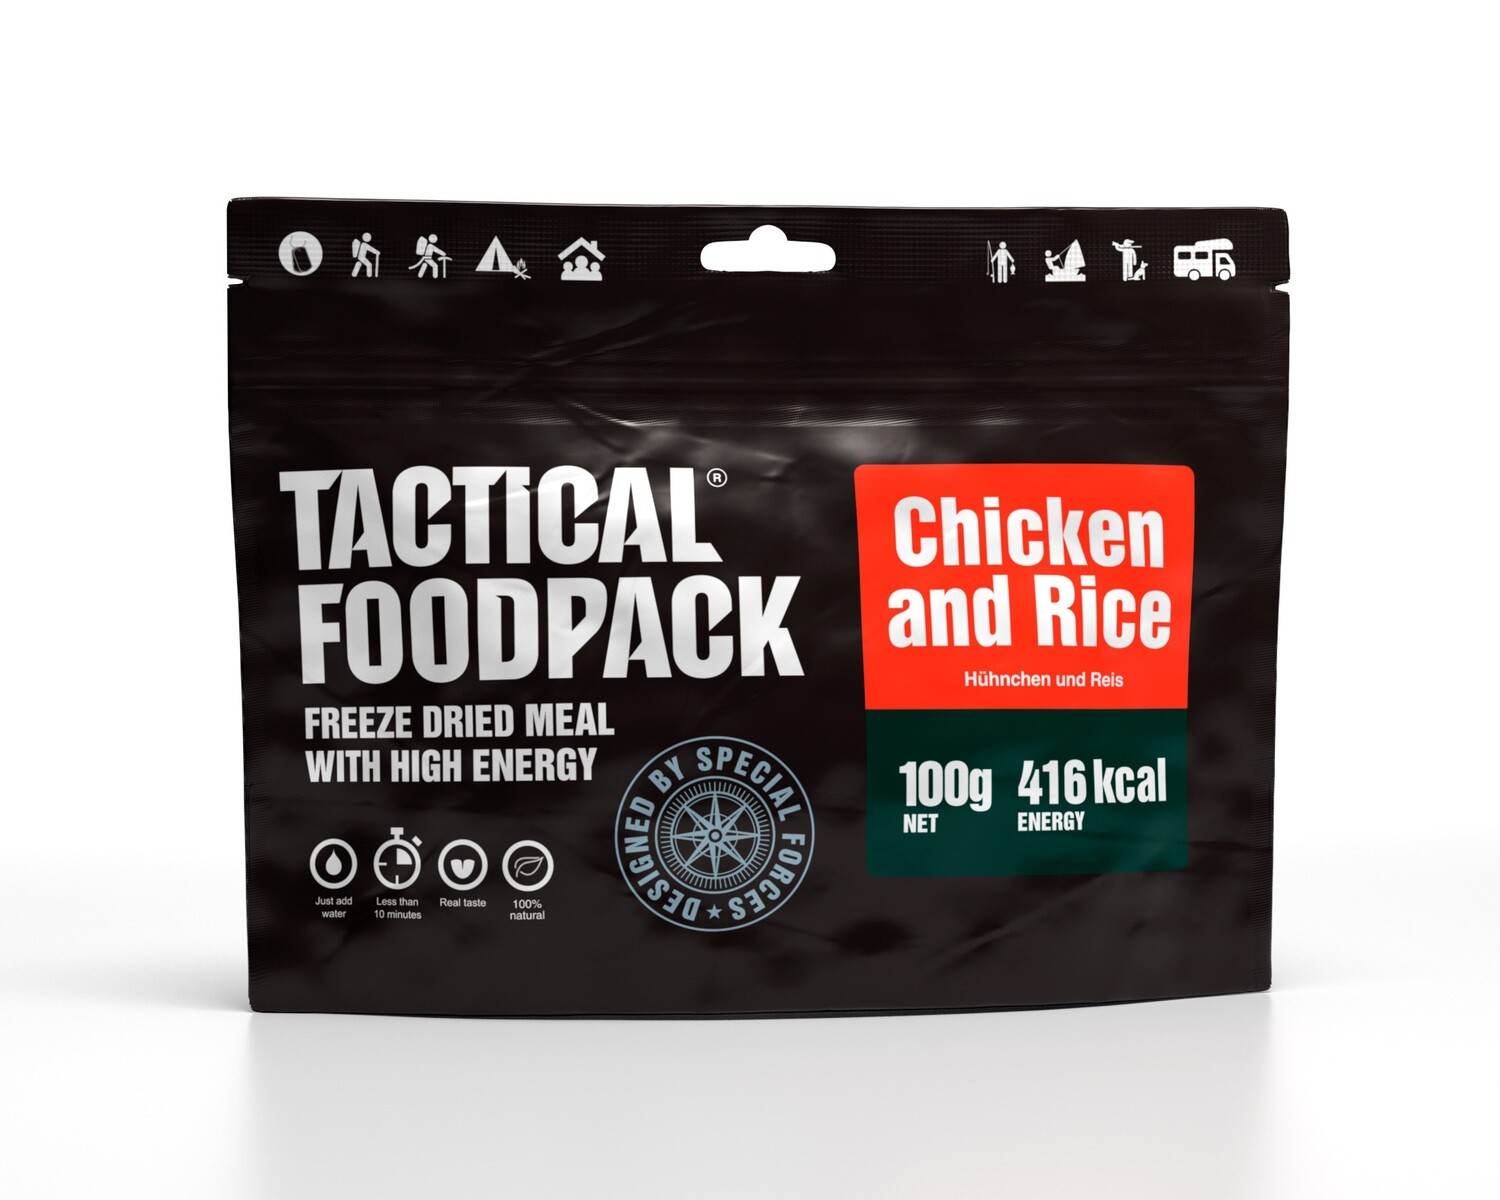 Tactical Foodpack - Chicken and Rice